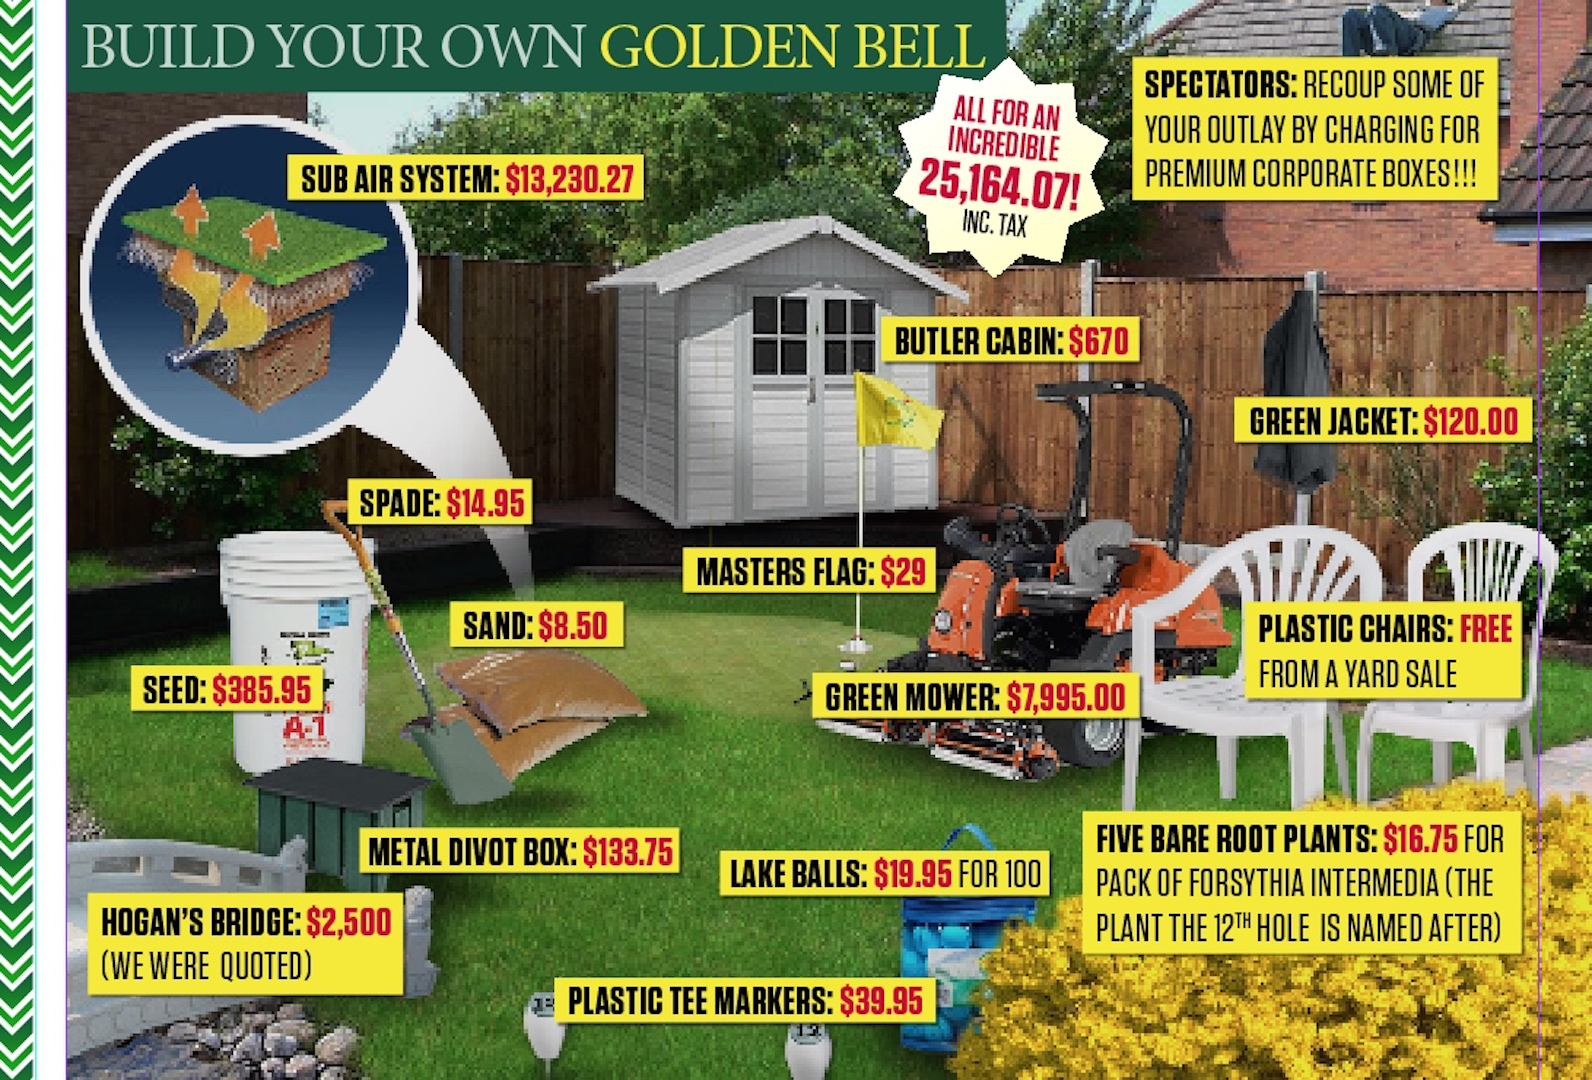 Build your own Masters Golden Bell